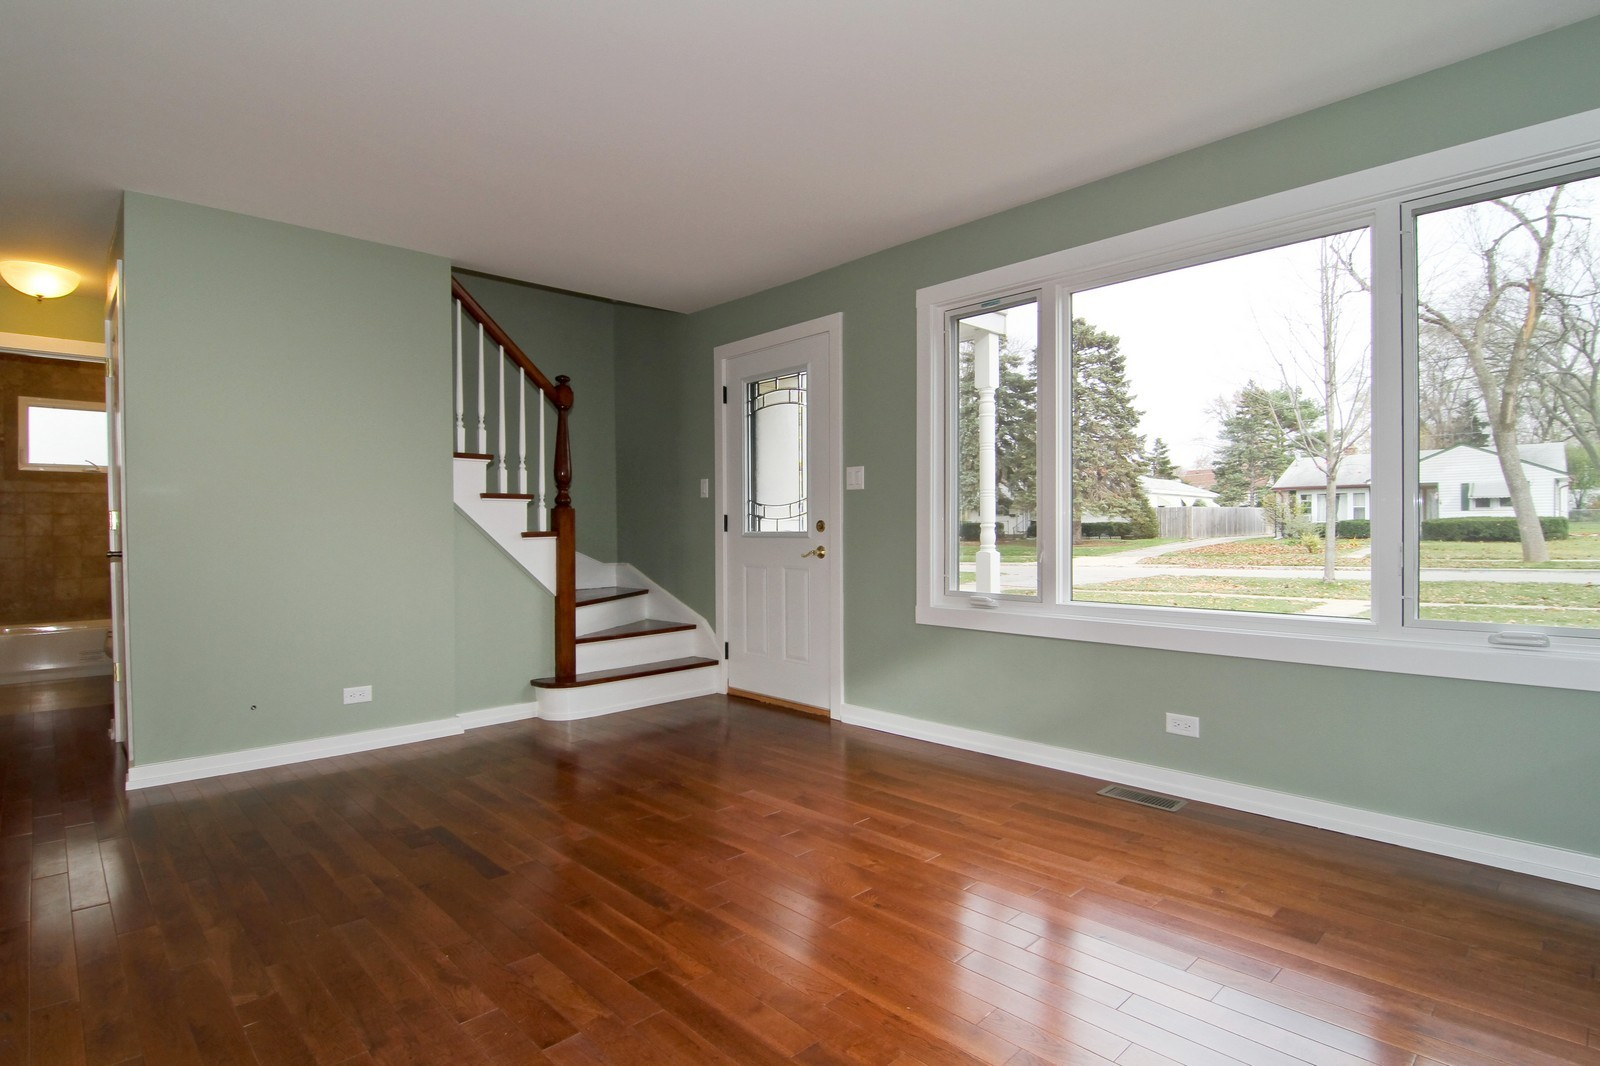 Real Estate Photography - 406 N Garfield St, Lombard, IL, 60148 - Living Room